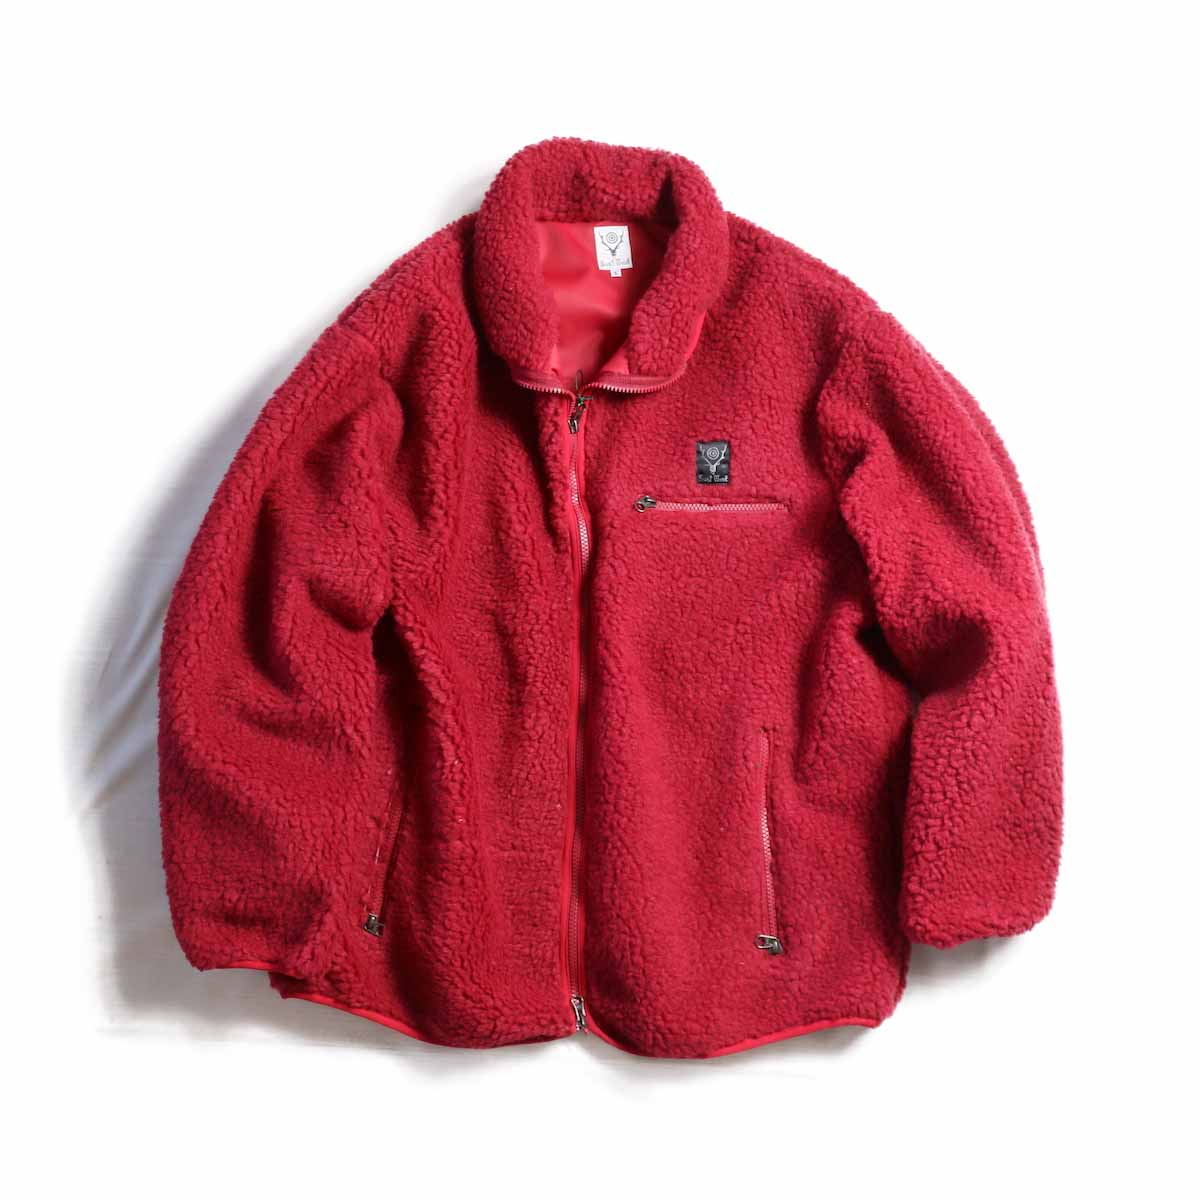 SOUTH2 WEST8 / Piping Jacket -Synthetic Pile(Red)